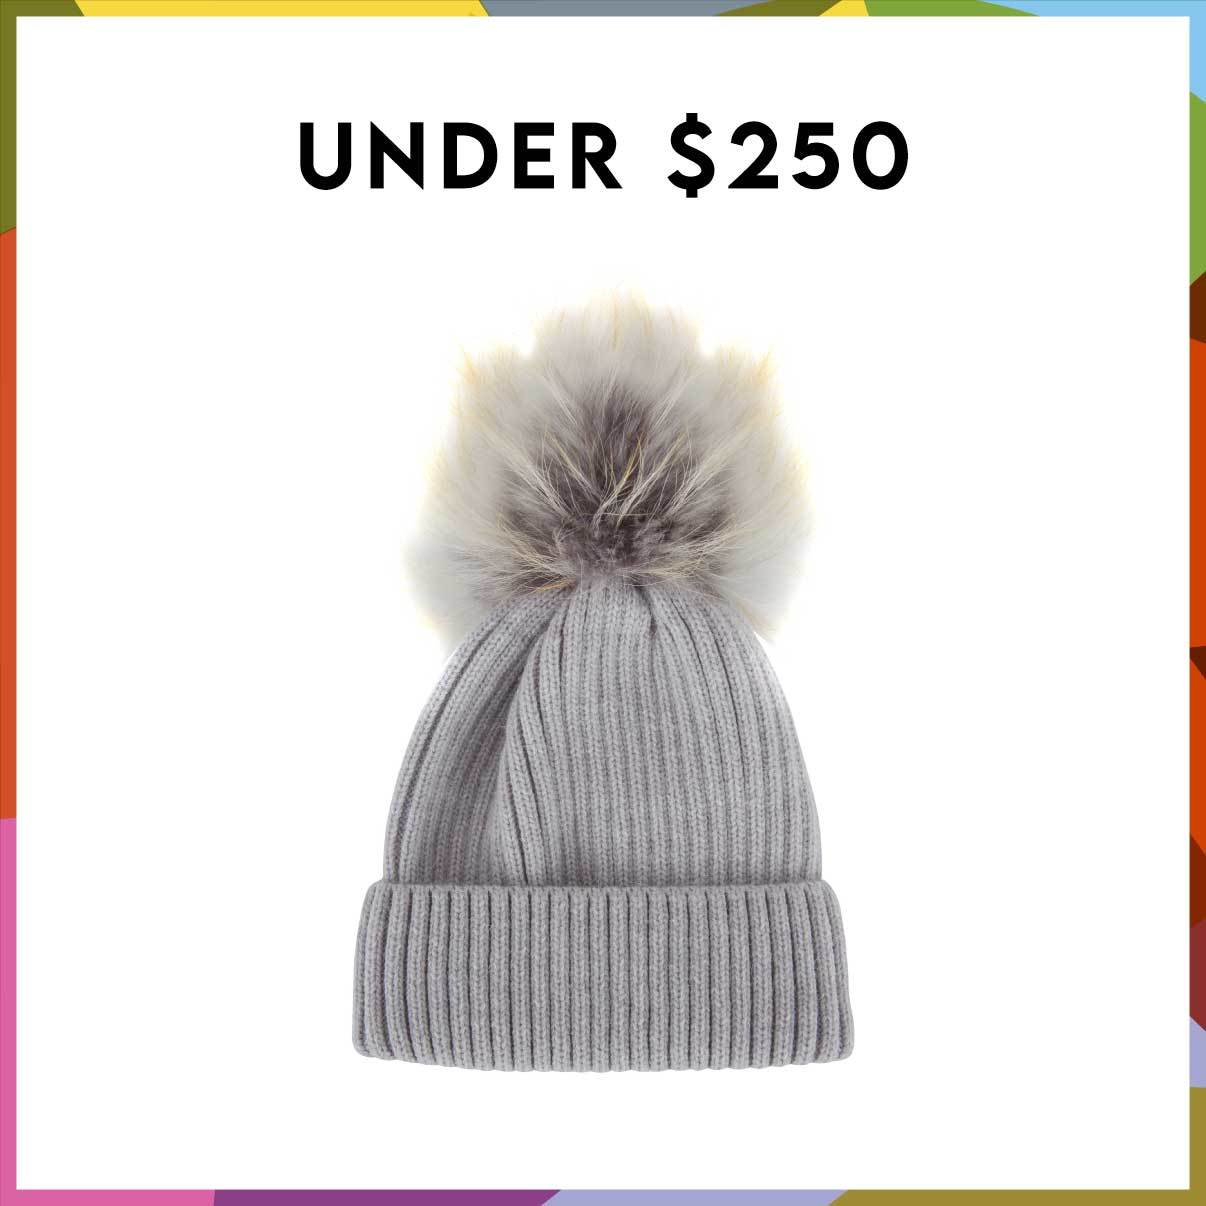 Gifts Under 250 for Her